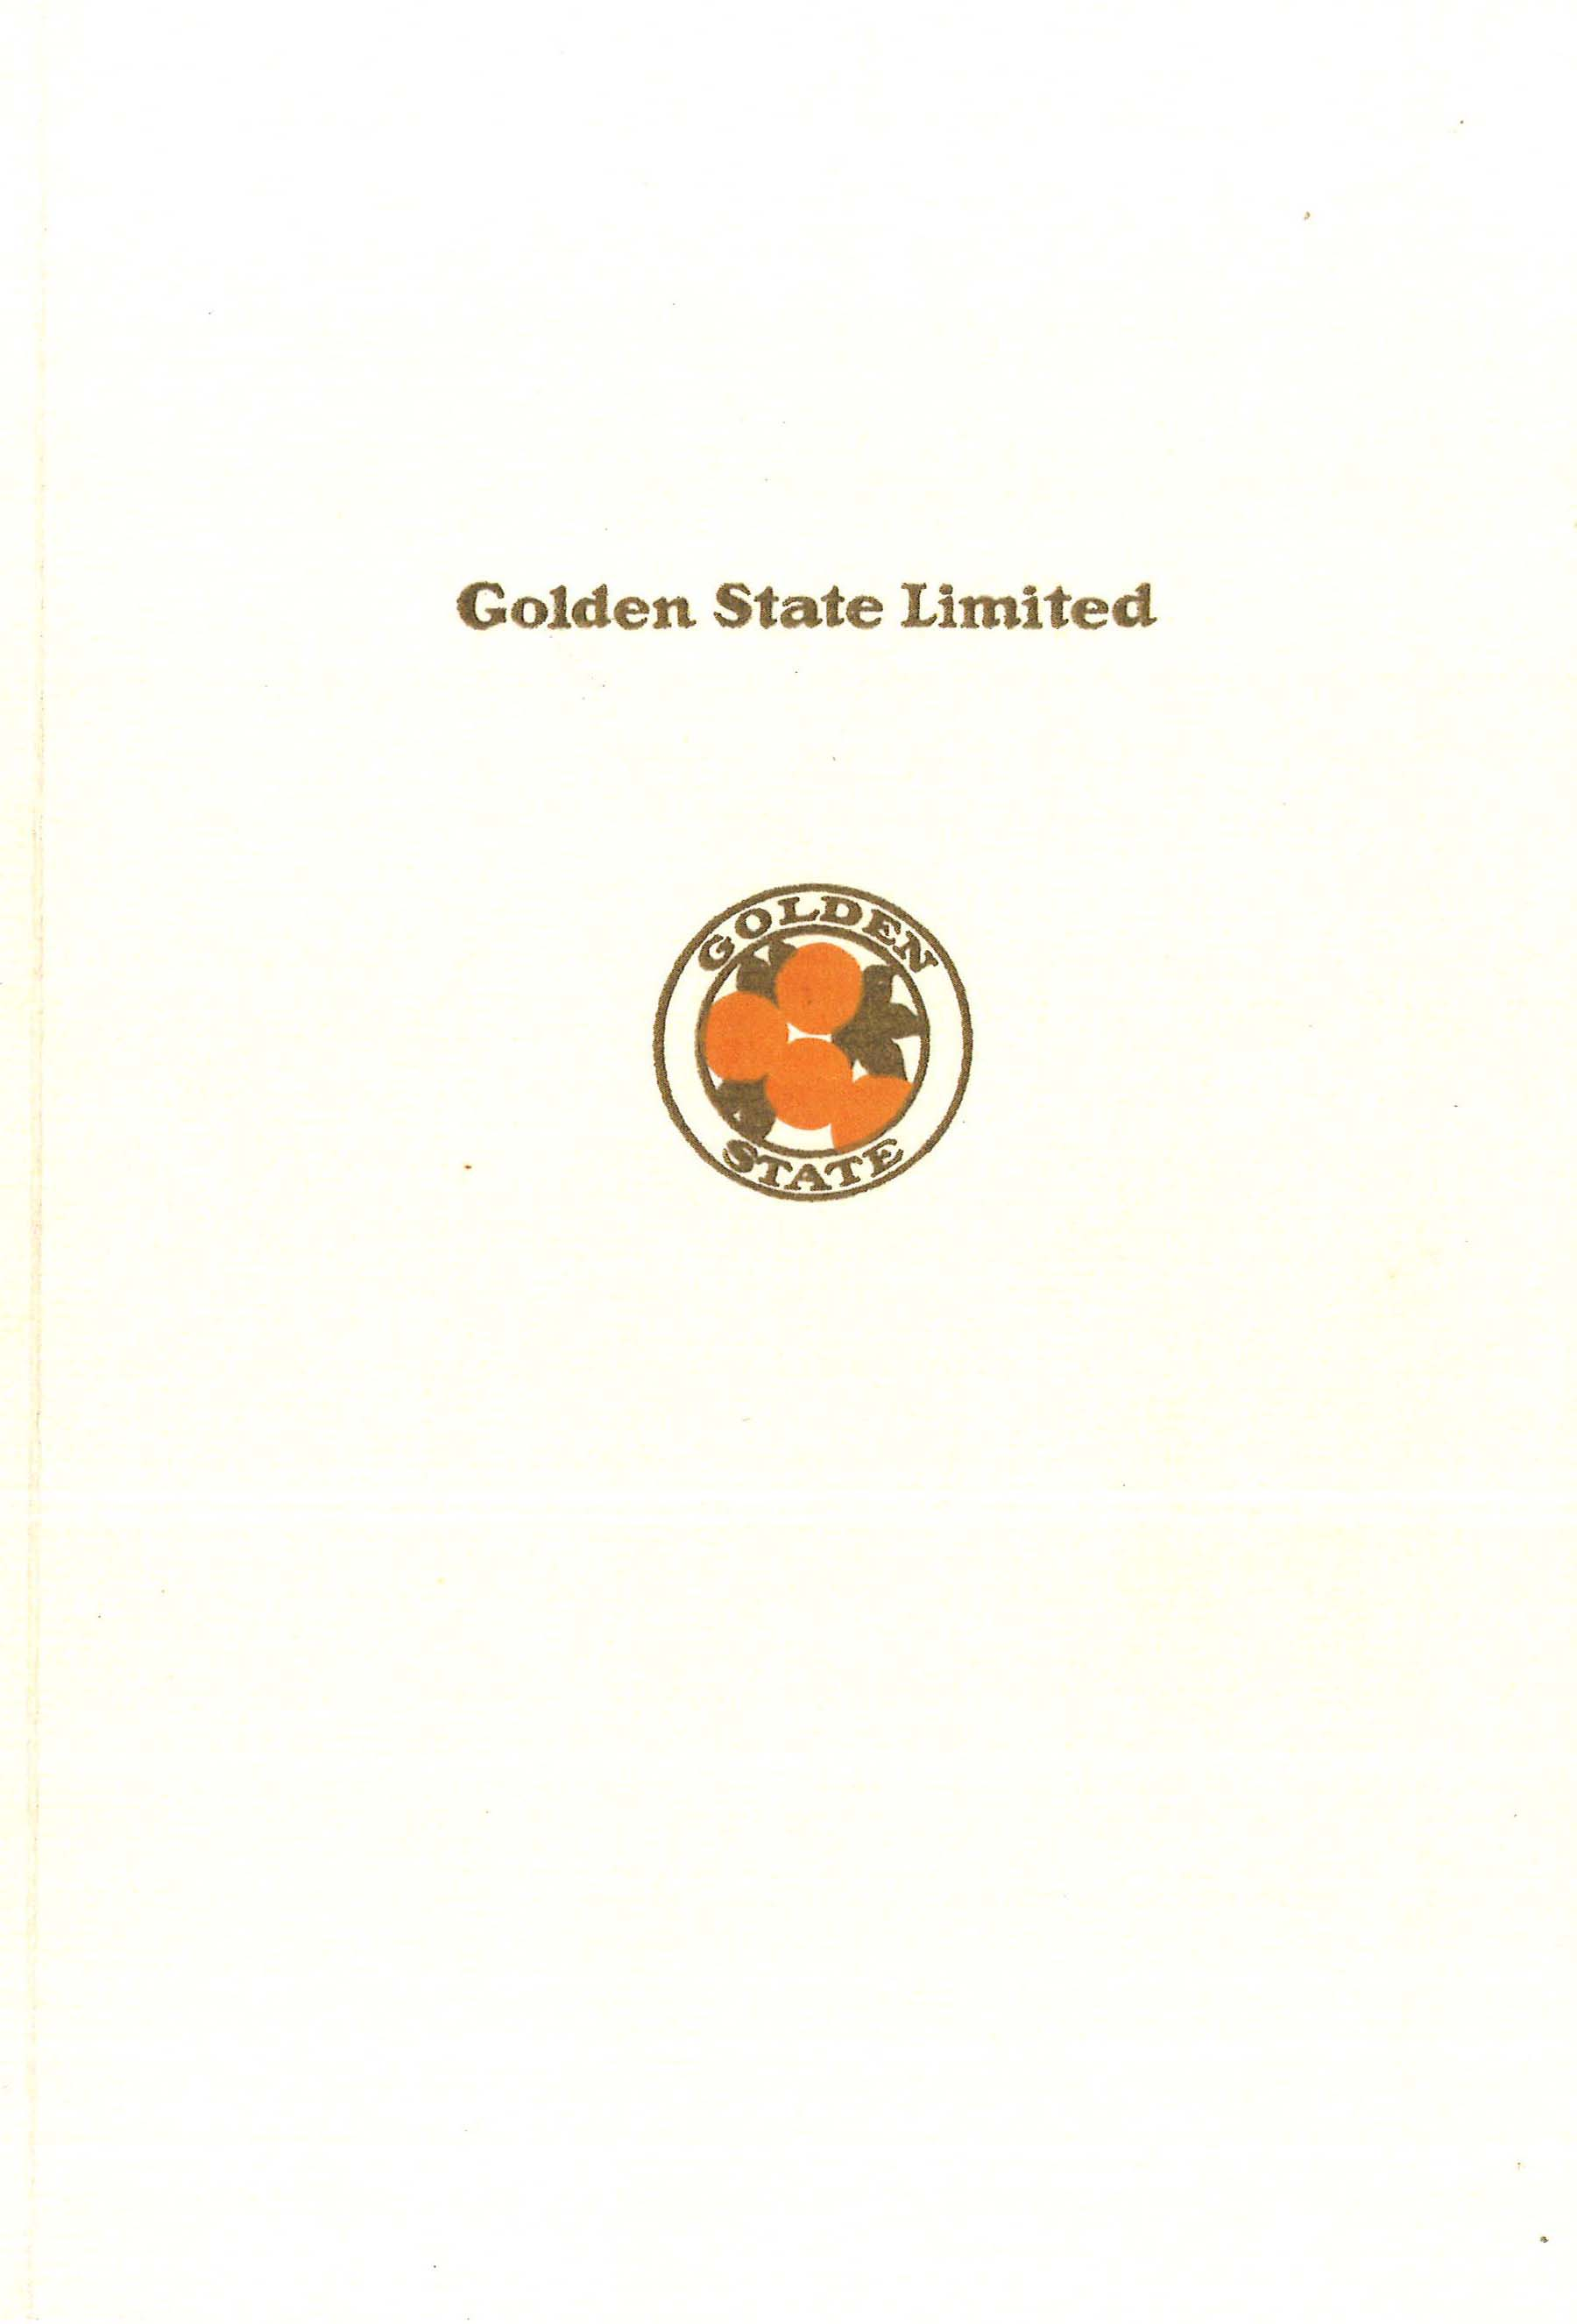 Golden+State+Limited+Lunch+Menu+ 1a.jpg